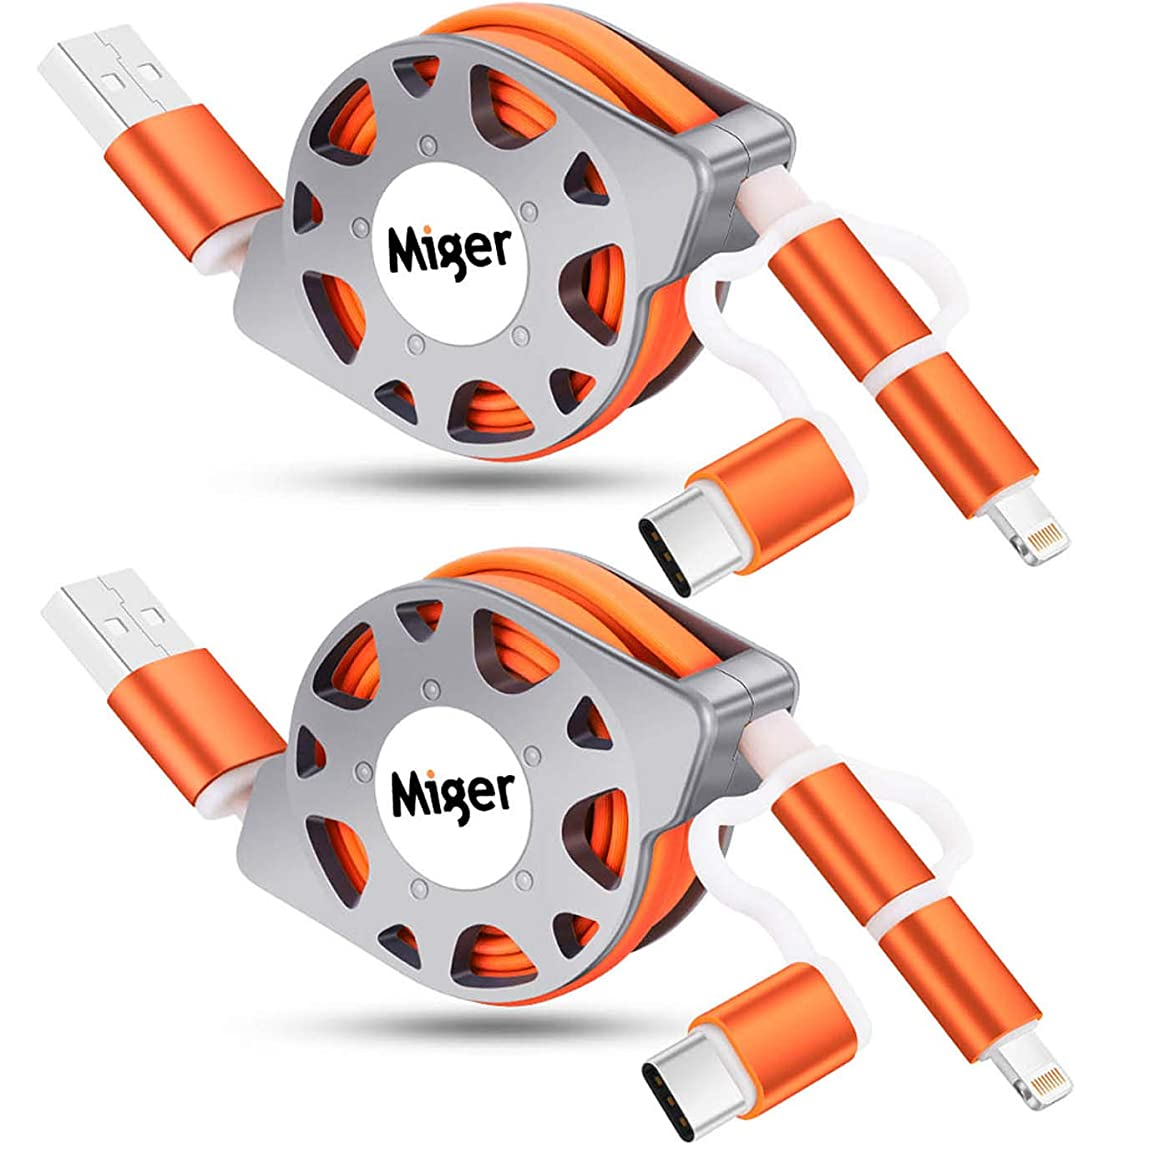 2Pack Miger 3.3Ft Retractable Charge and Sync 3 in 1 Cable with Lightning & Micro USB & Type C Connectors Compatible with iPhone, iPad, iPod, Samsung/HTC/LG, Nexus,Onplus,Apple MacBook(Orange)